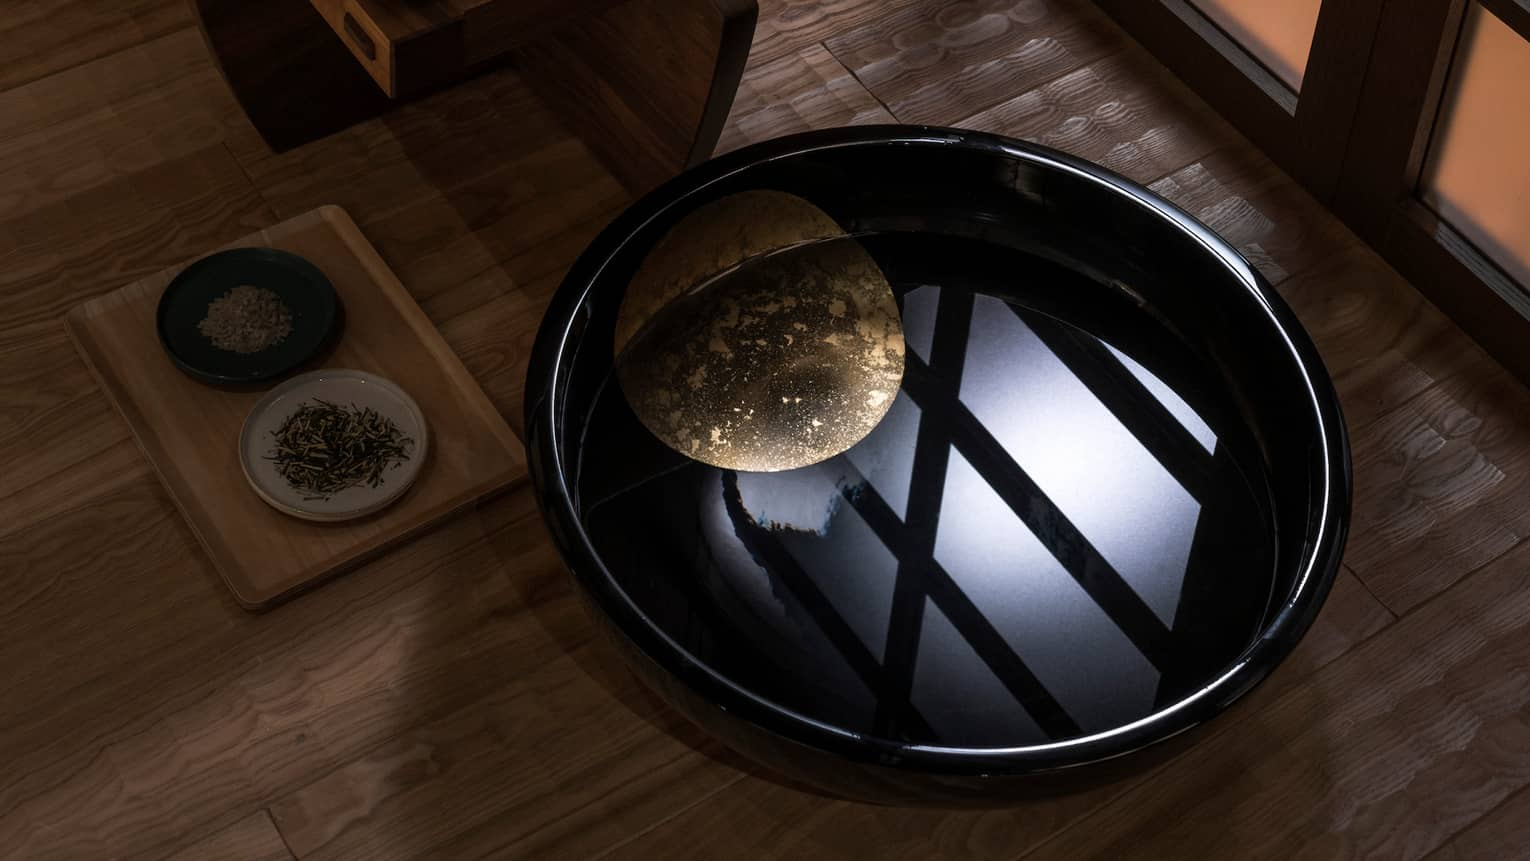 Light reflected in black bowl with water in spa